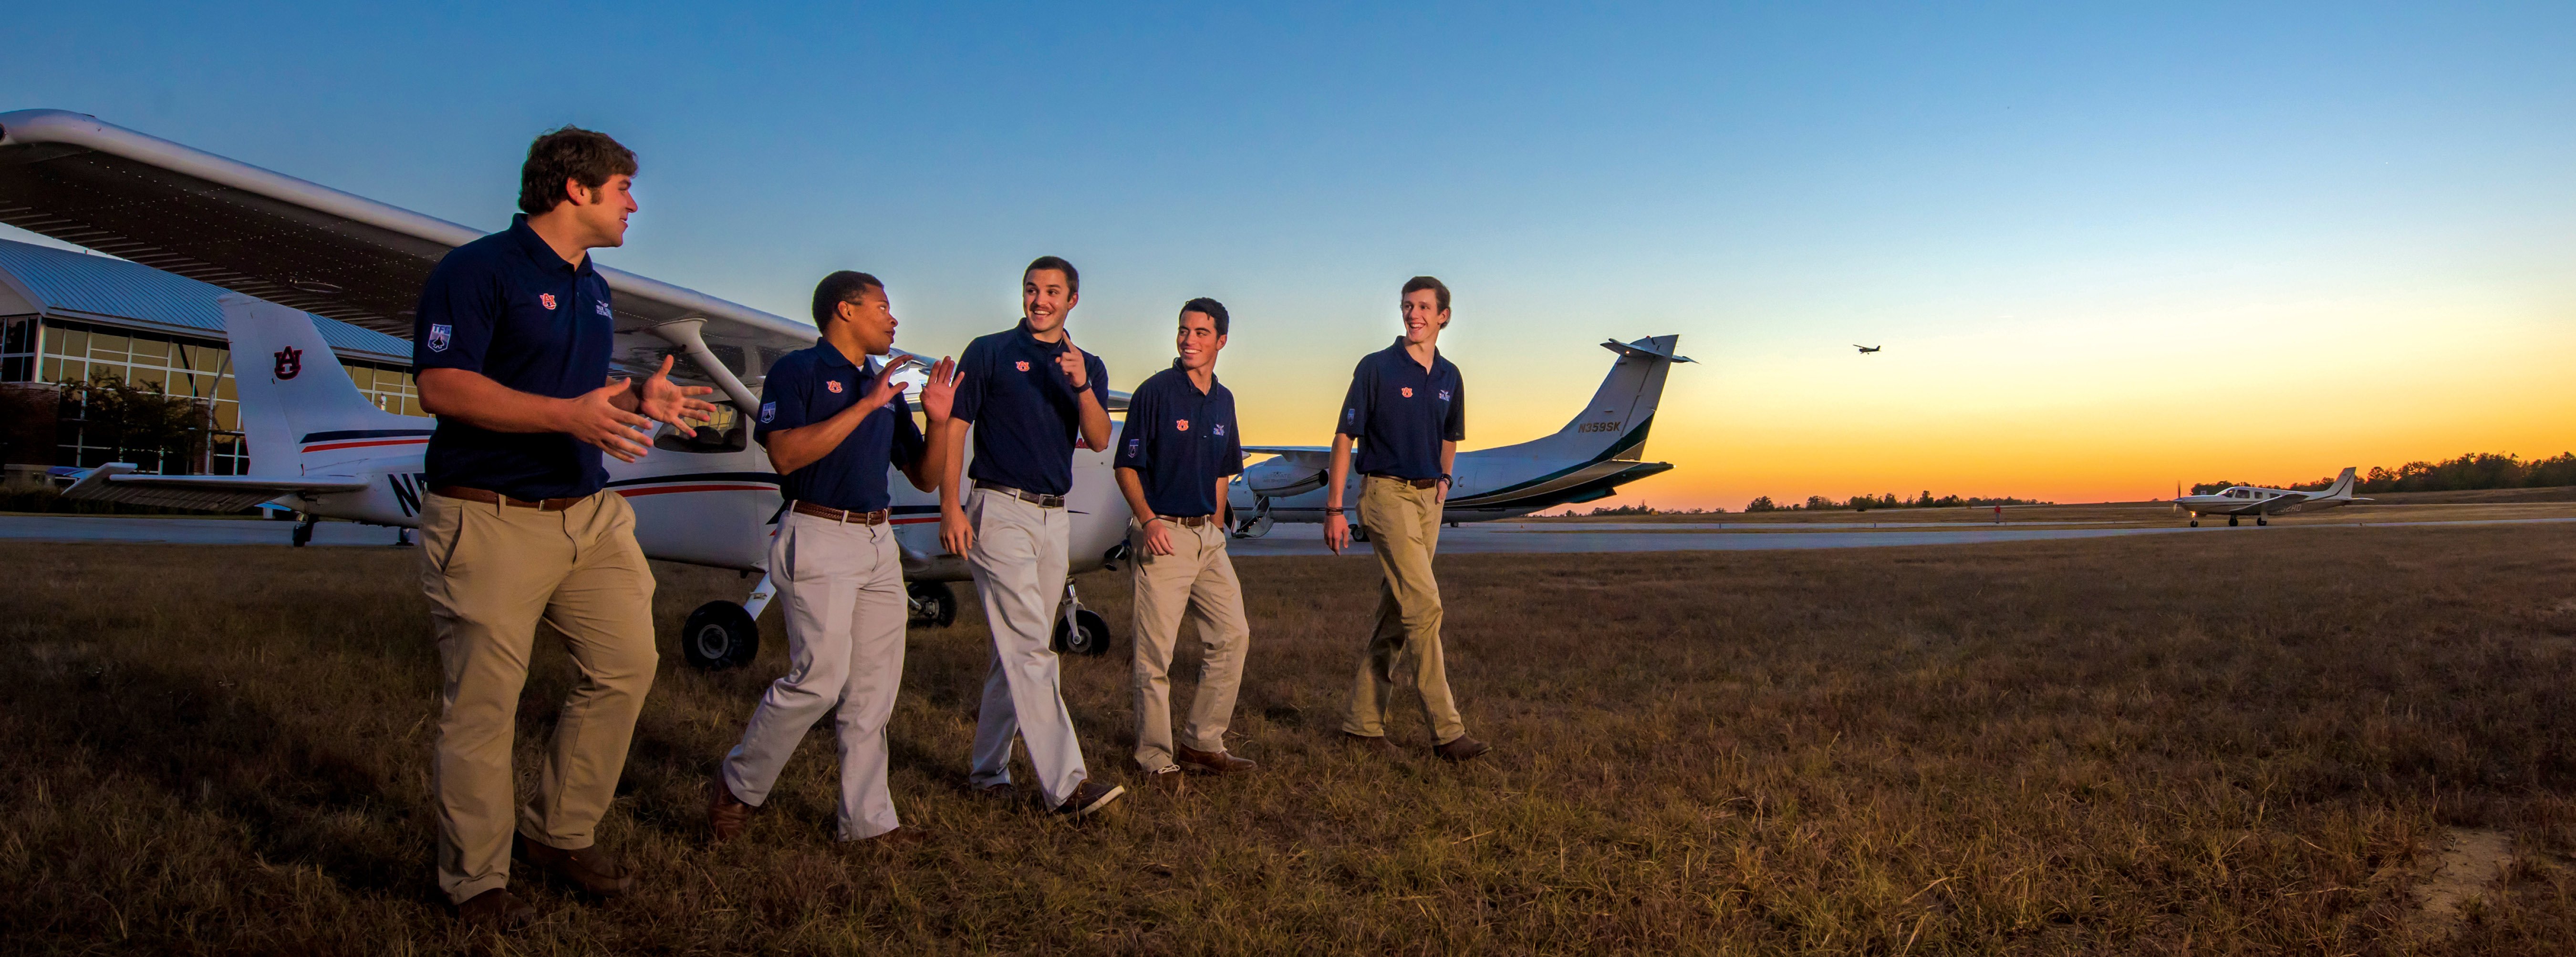 Auburn aviation students